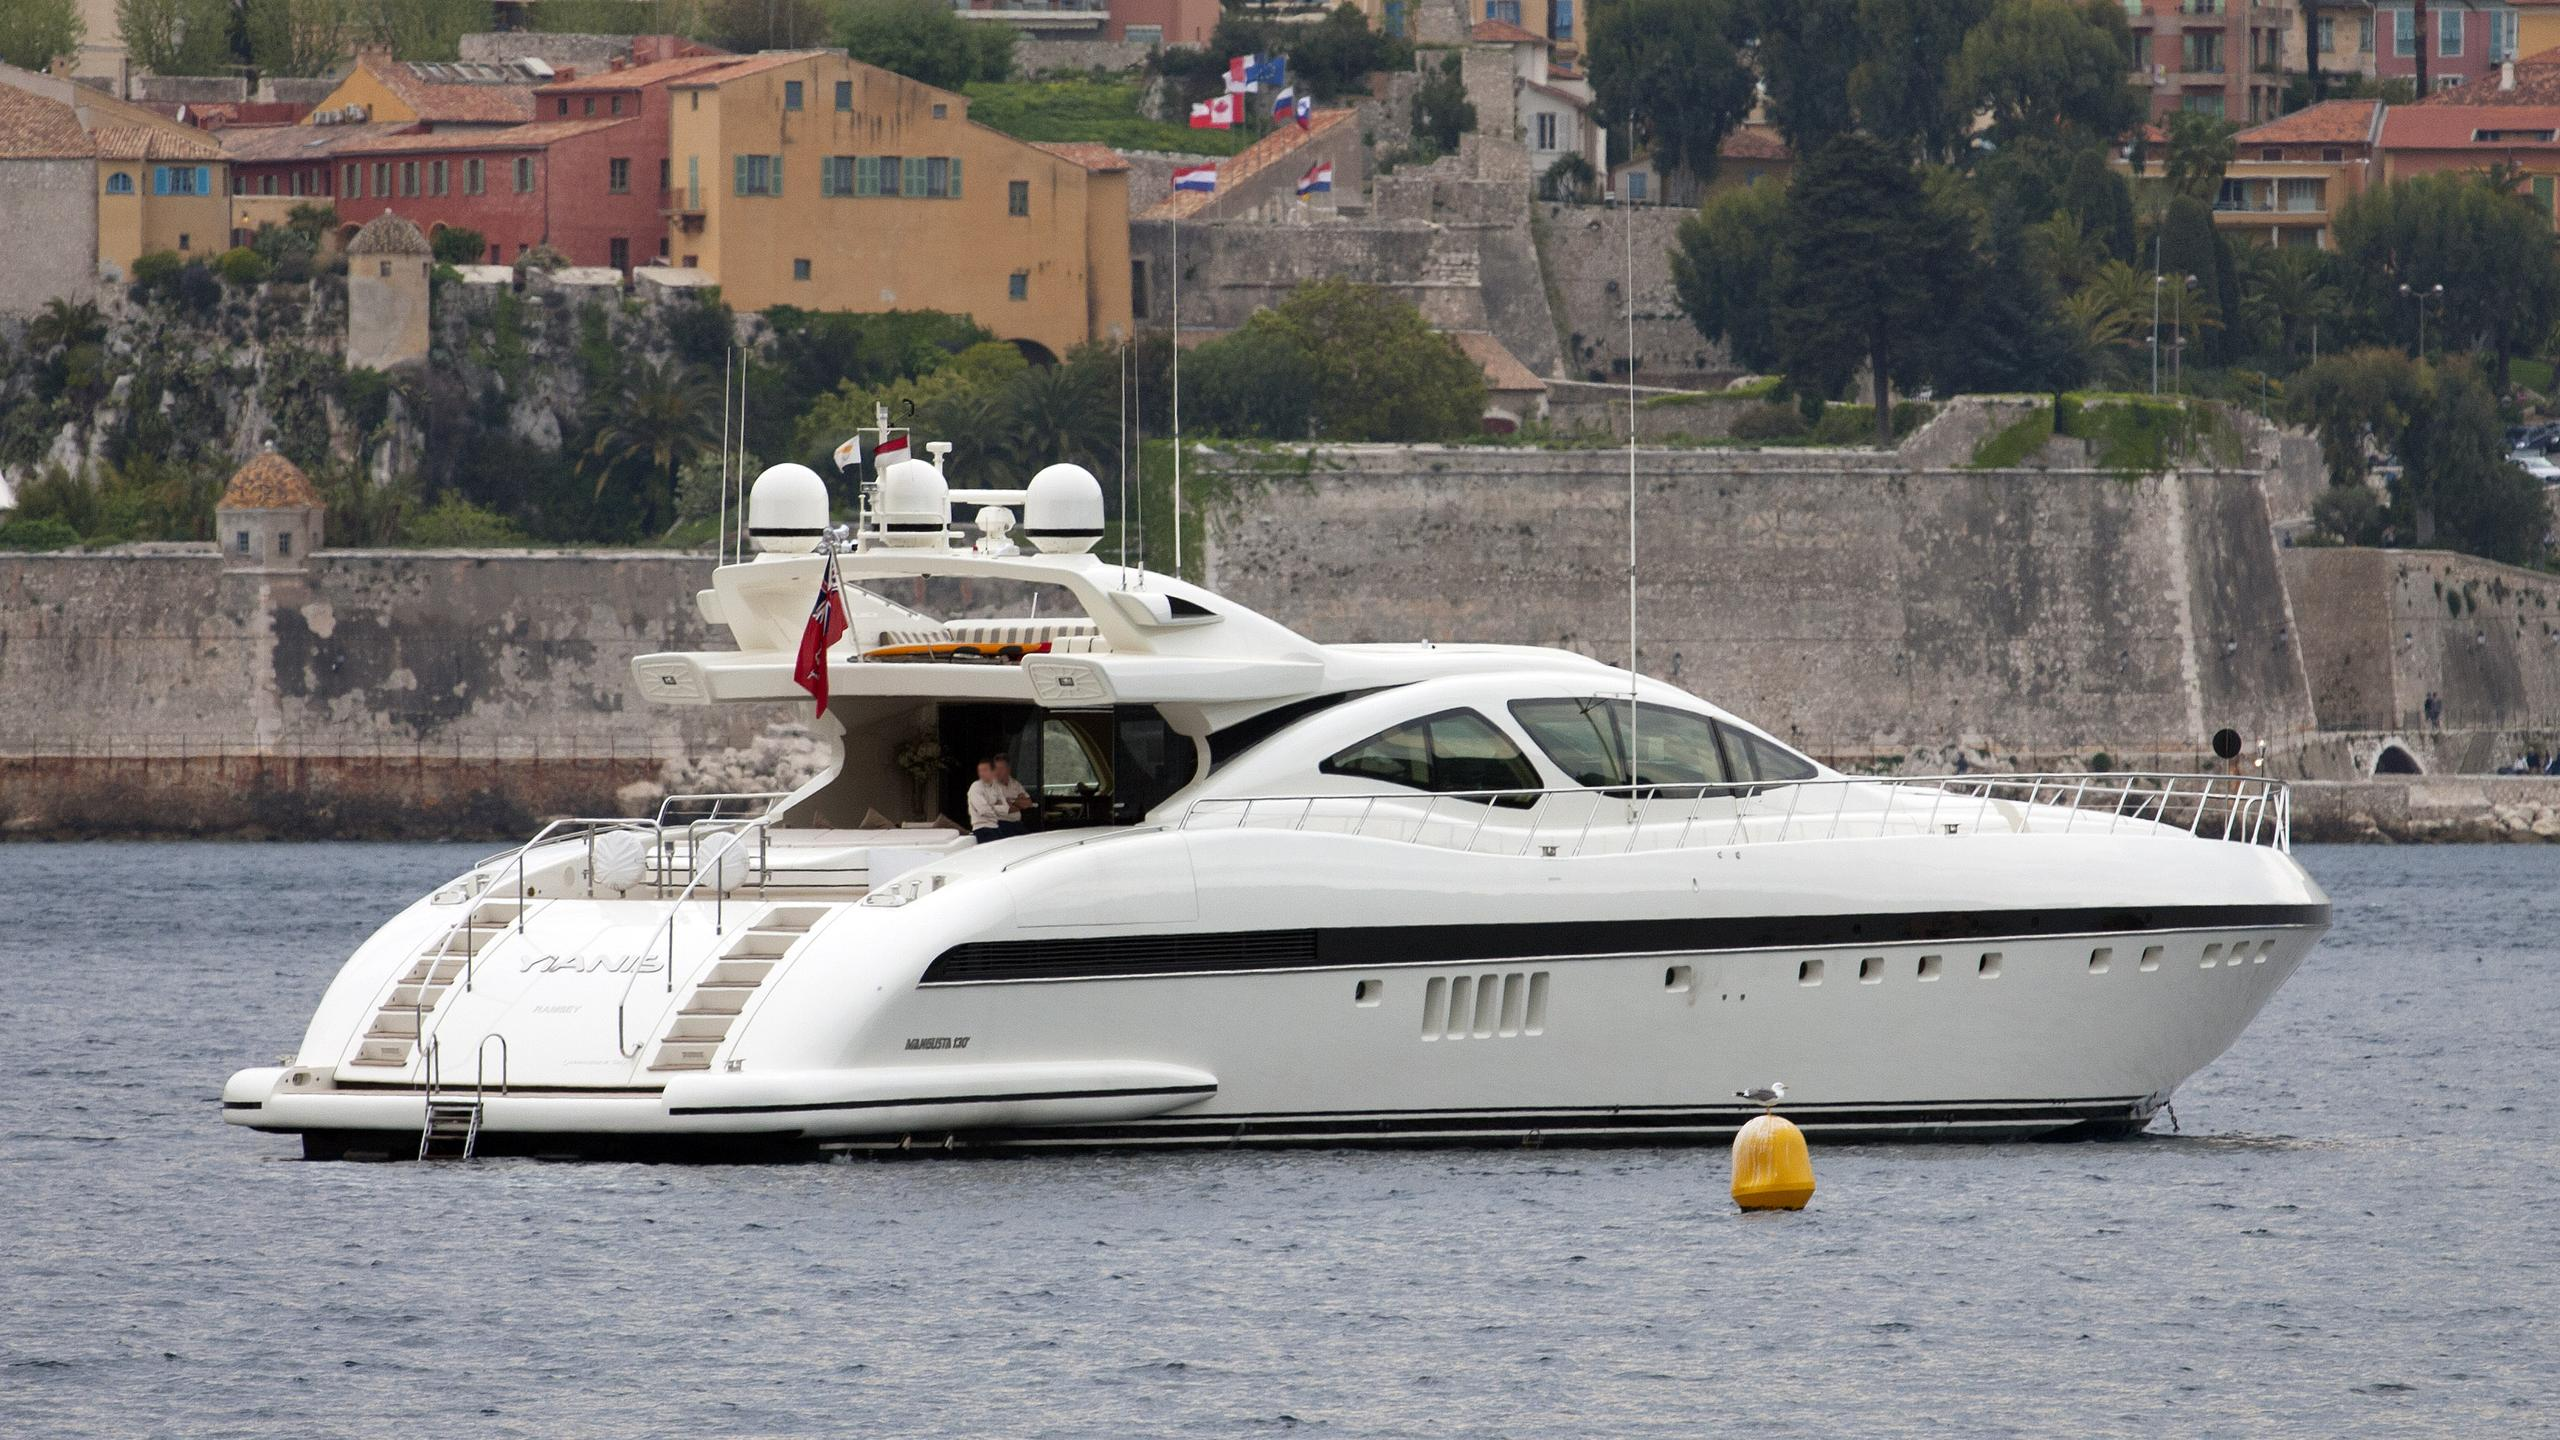 incognito-motor-yacht-overmarine-mangusta-130-sport-2005-39m-moored-stern